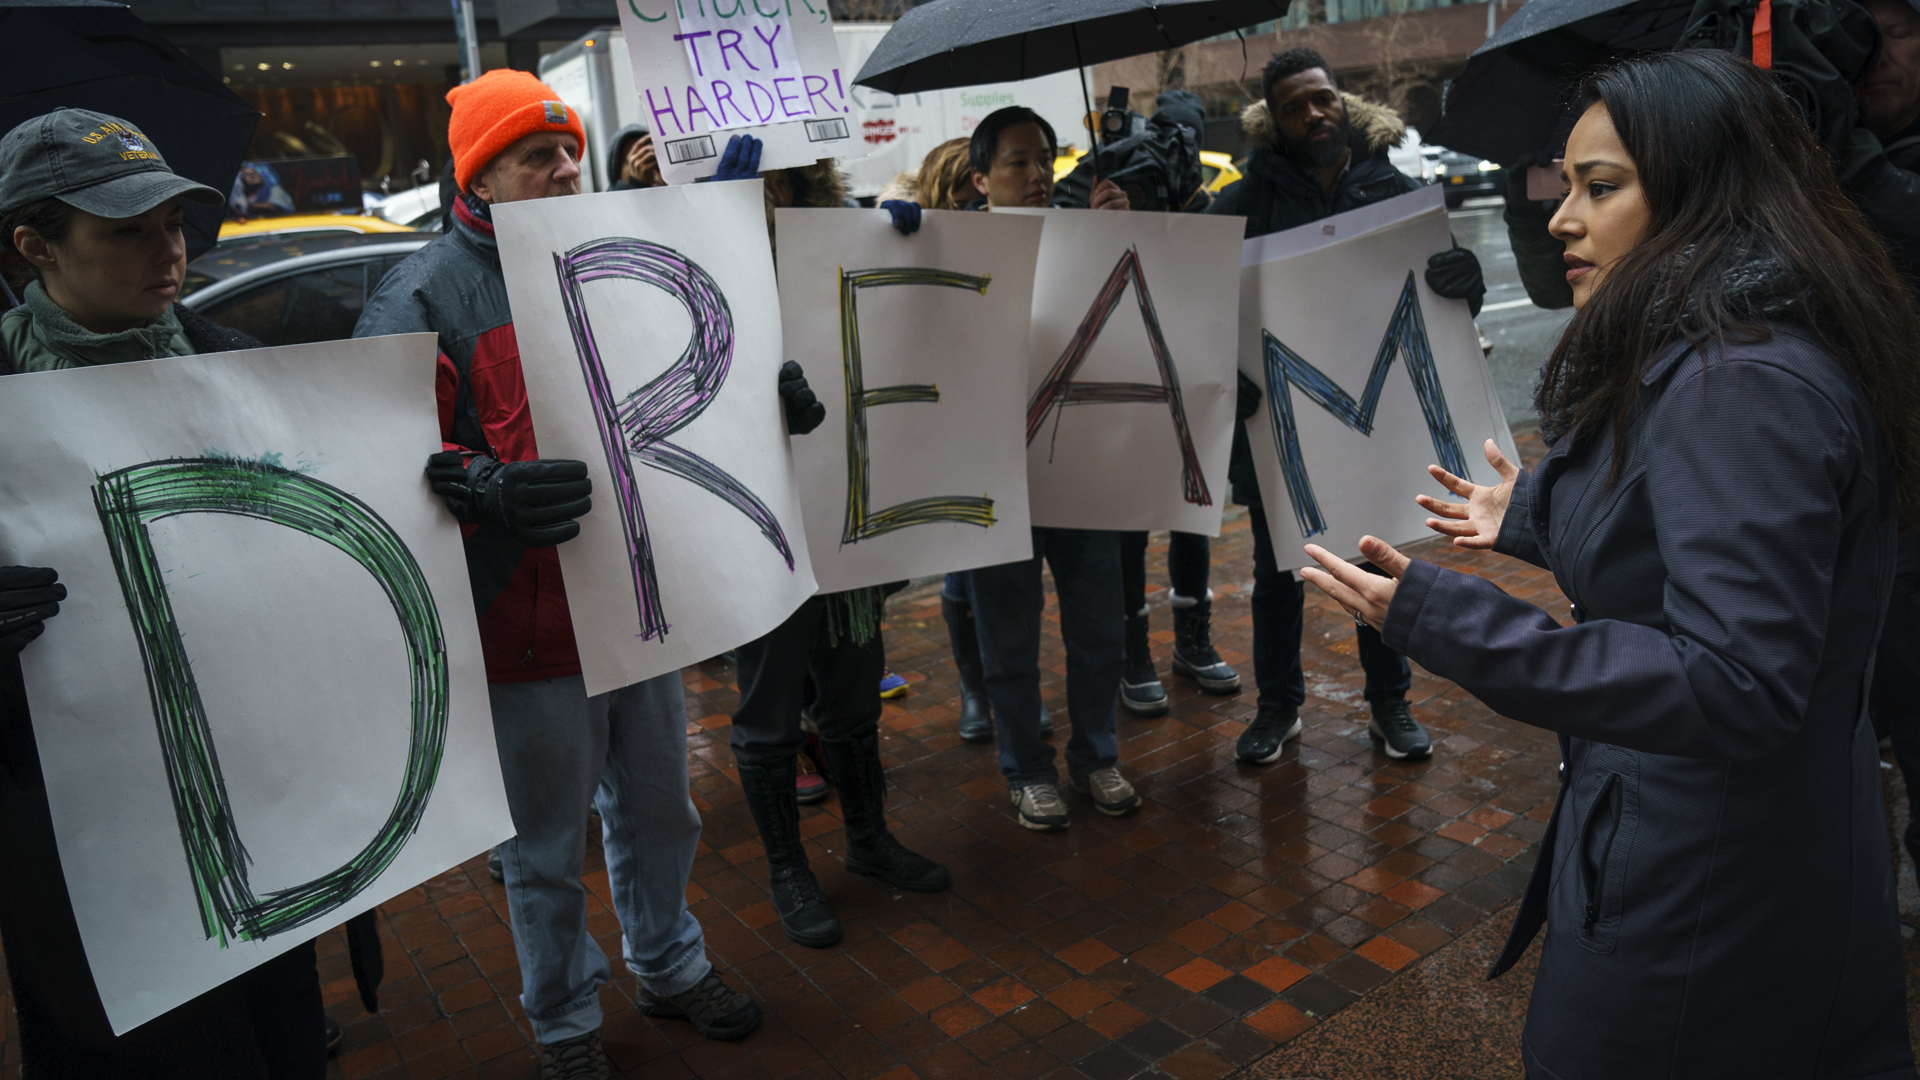 Activists rally for the passage of a 'clean' Dream Act, one without additional security or enforcement measures, outside the New York office of Sen. Chuck Schumer (D-NY), January 17, 2018 in New York City. (Credit: Drew Angerer/Getty Images)